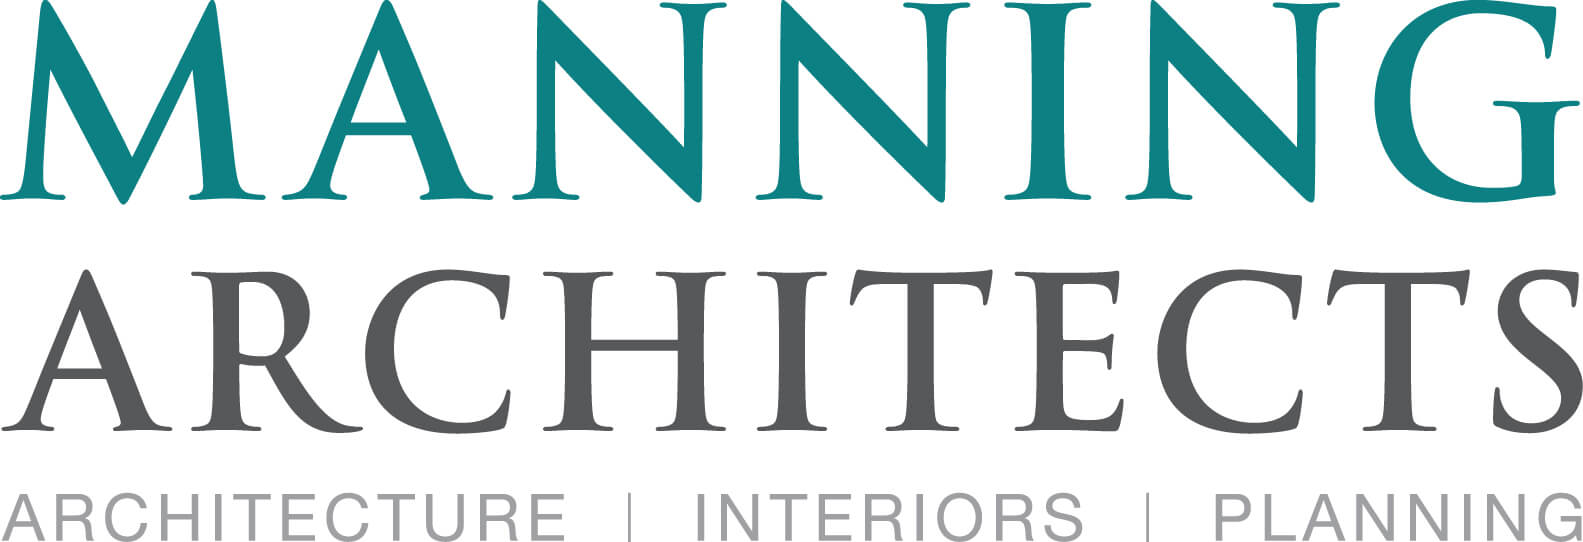 Manning Architects logo. Click to view site.